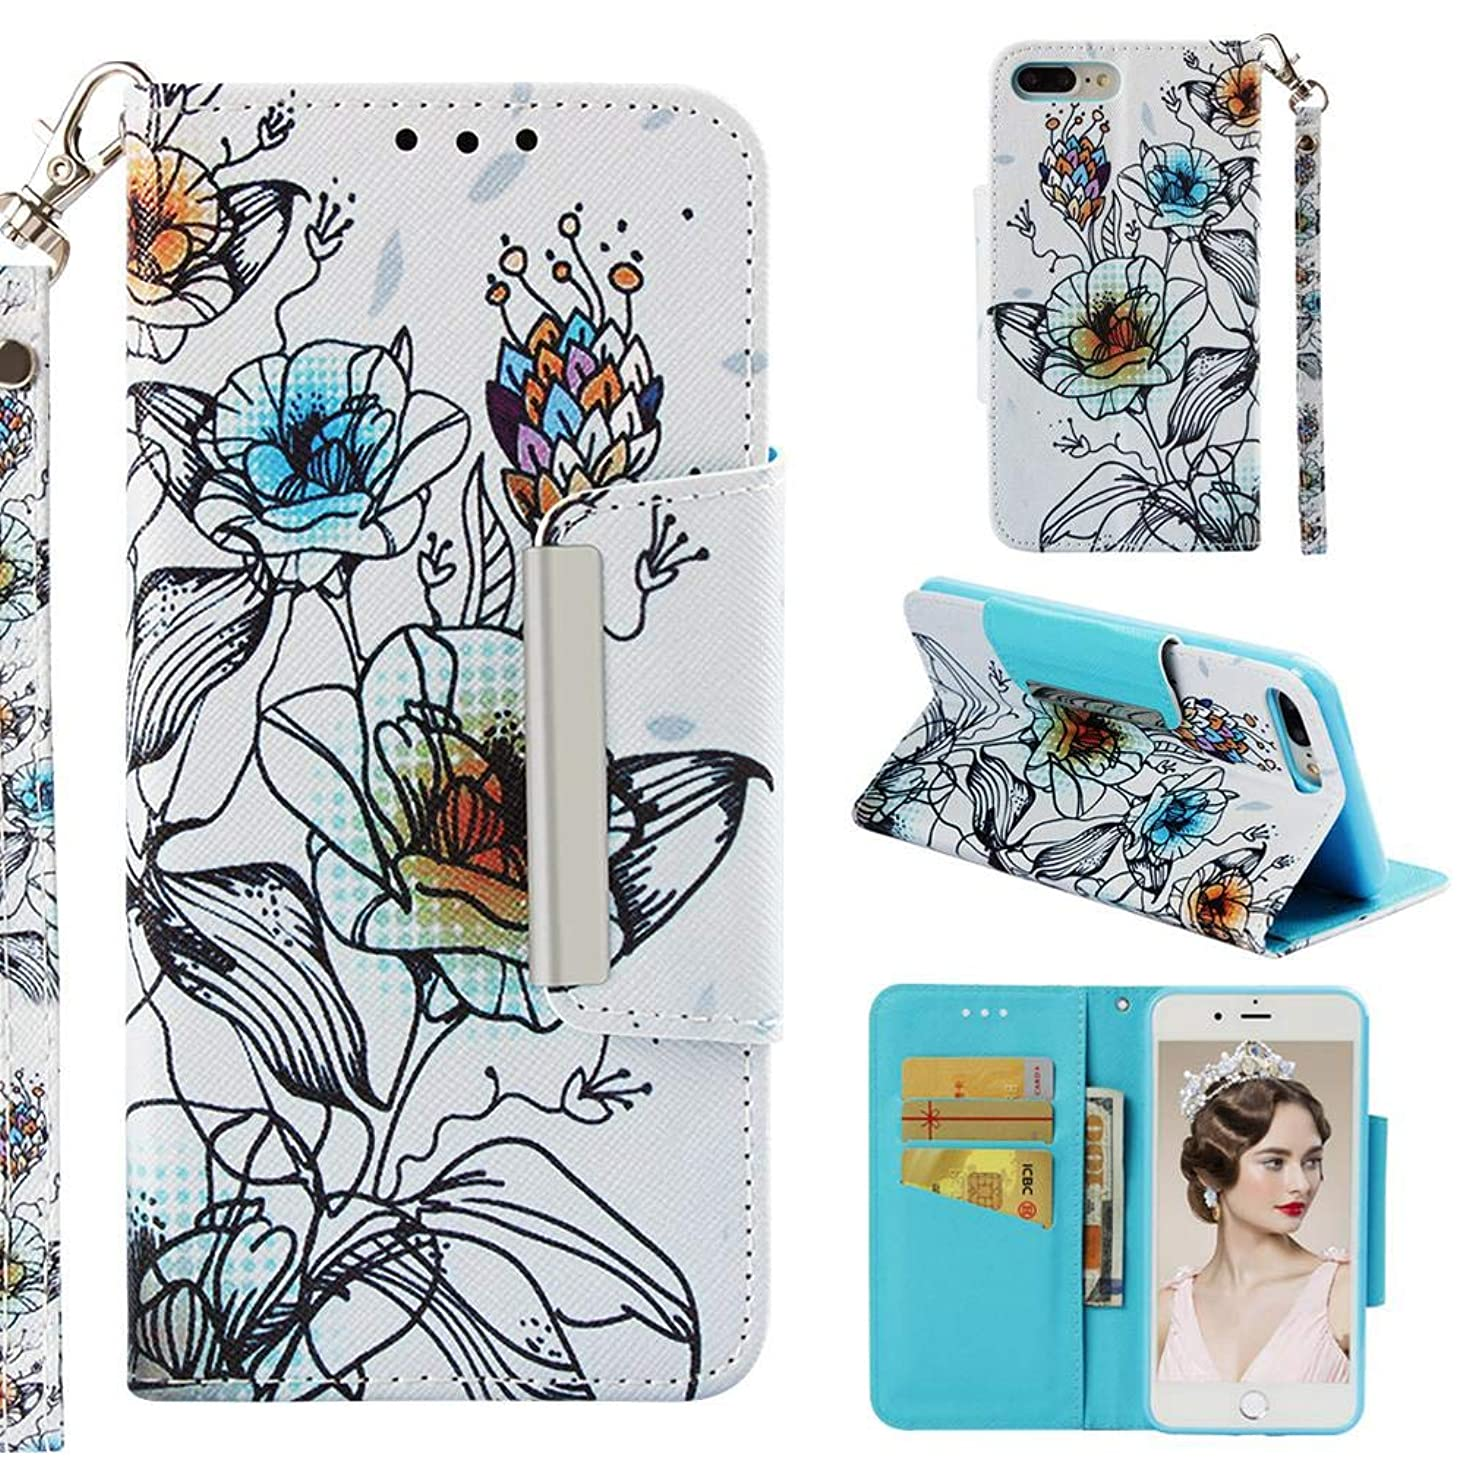 Case for iPhone 7 Plus/8 Plus,Slim 3D Printing PU Leather Kickstand Wallet Case Card Holder Inner Soft TPU Bumper with Magnetic Closure & Wrist Strap Compatible with Apple iPhone 7 Plus/8 Plus -Lily